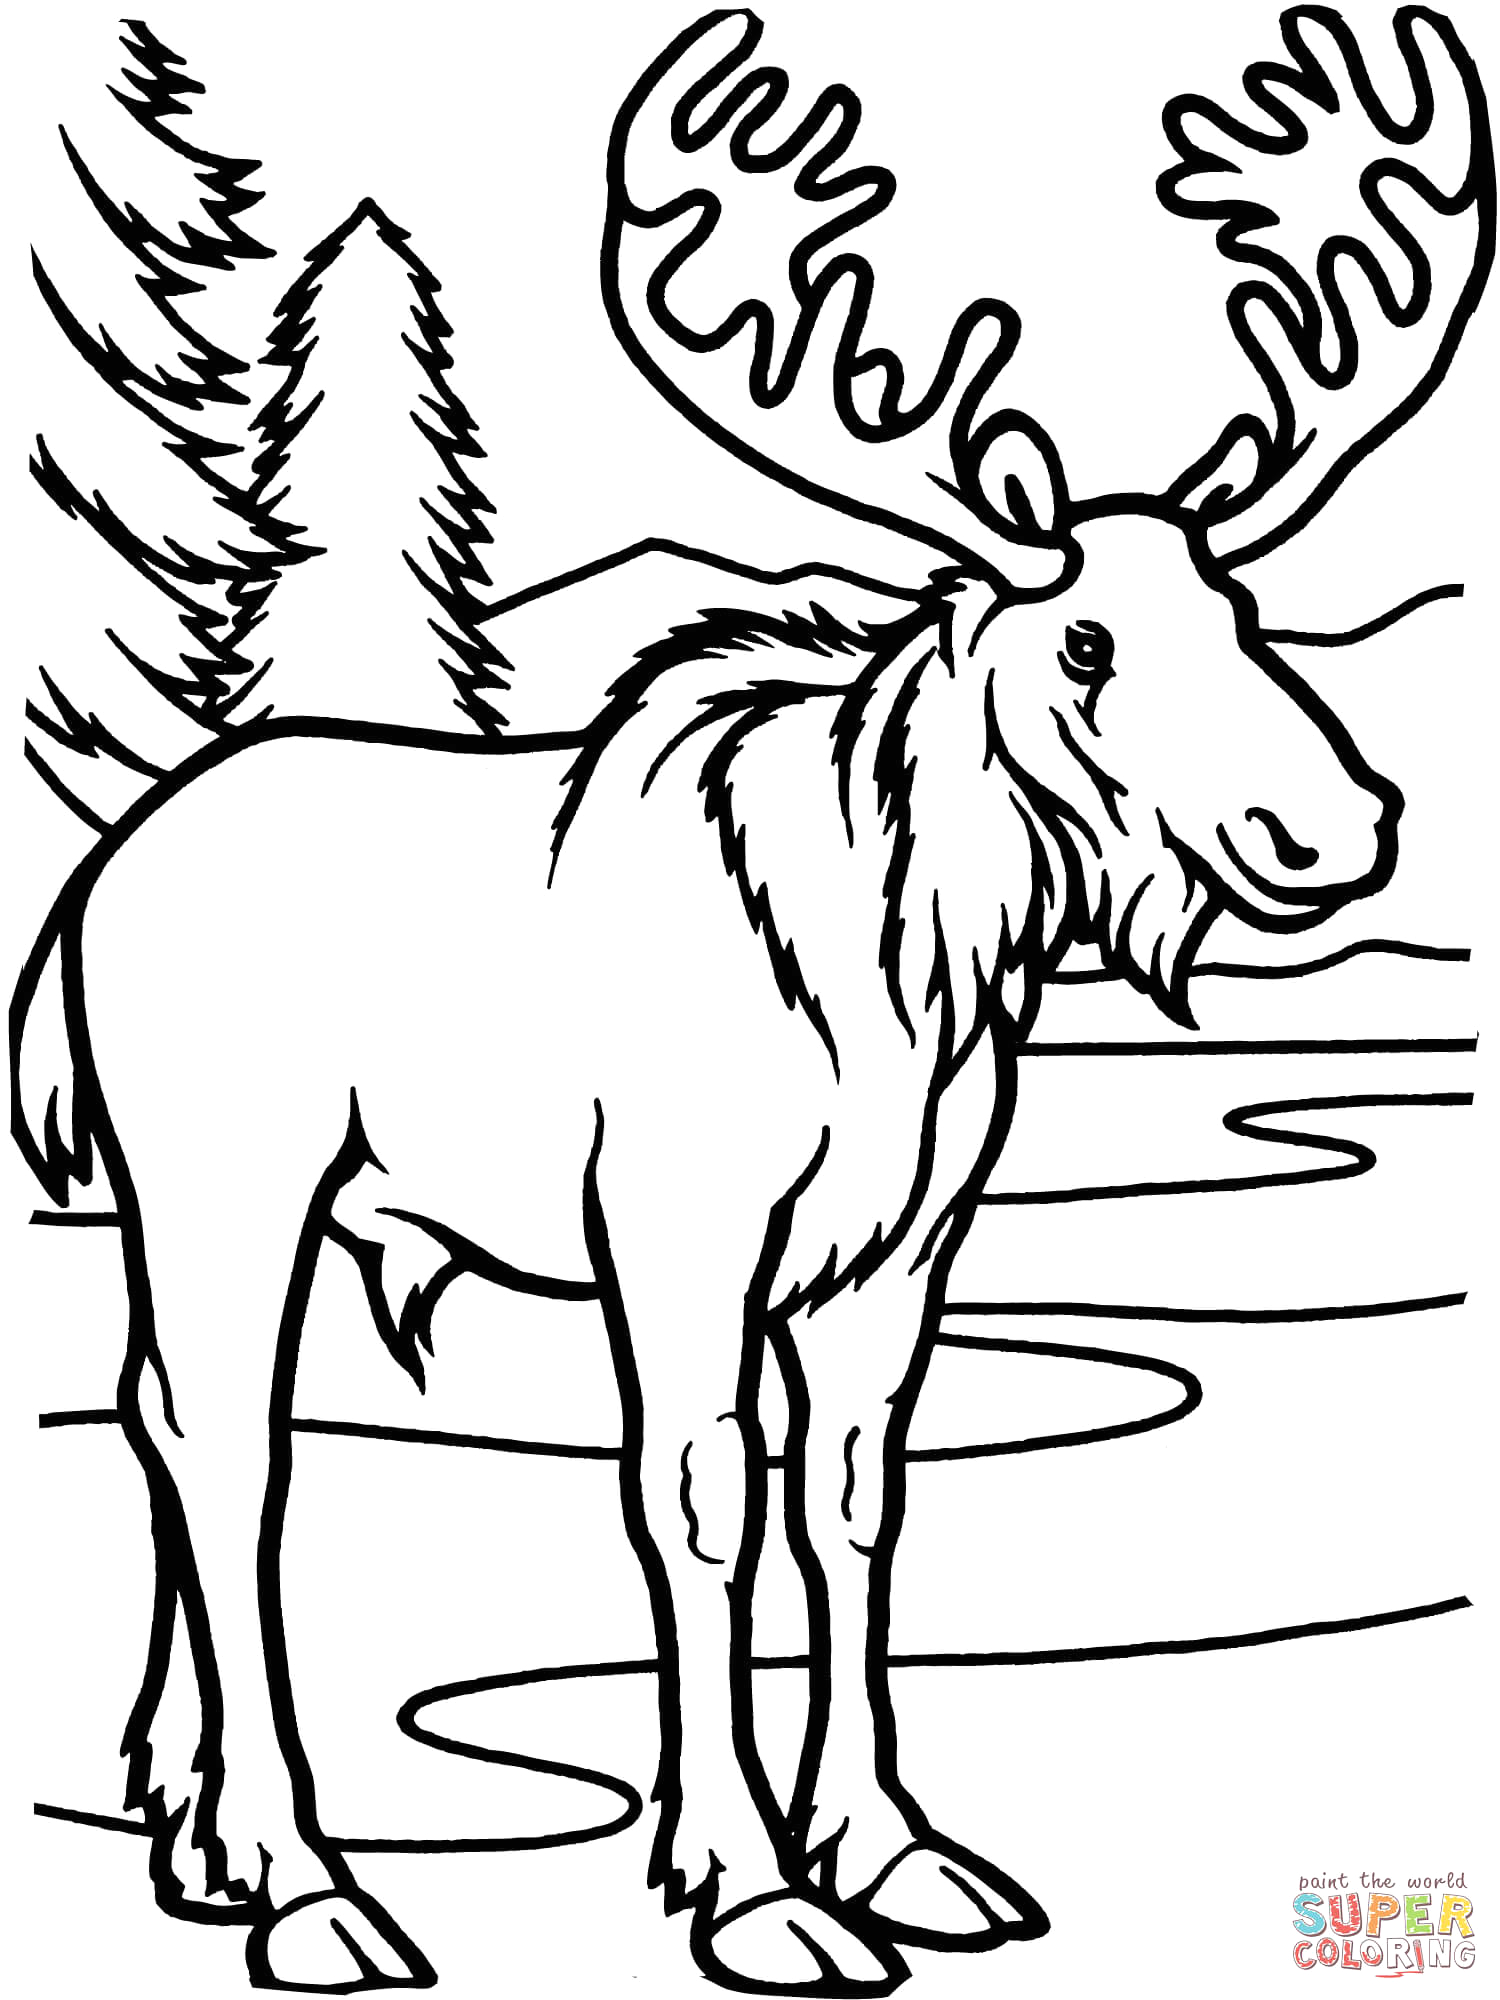 Camp Moose On the Loose Coloring Pages Moose Bull Coloring Line